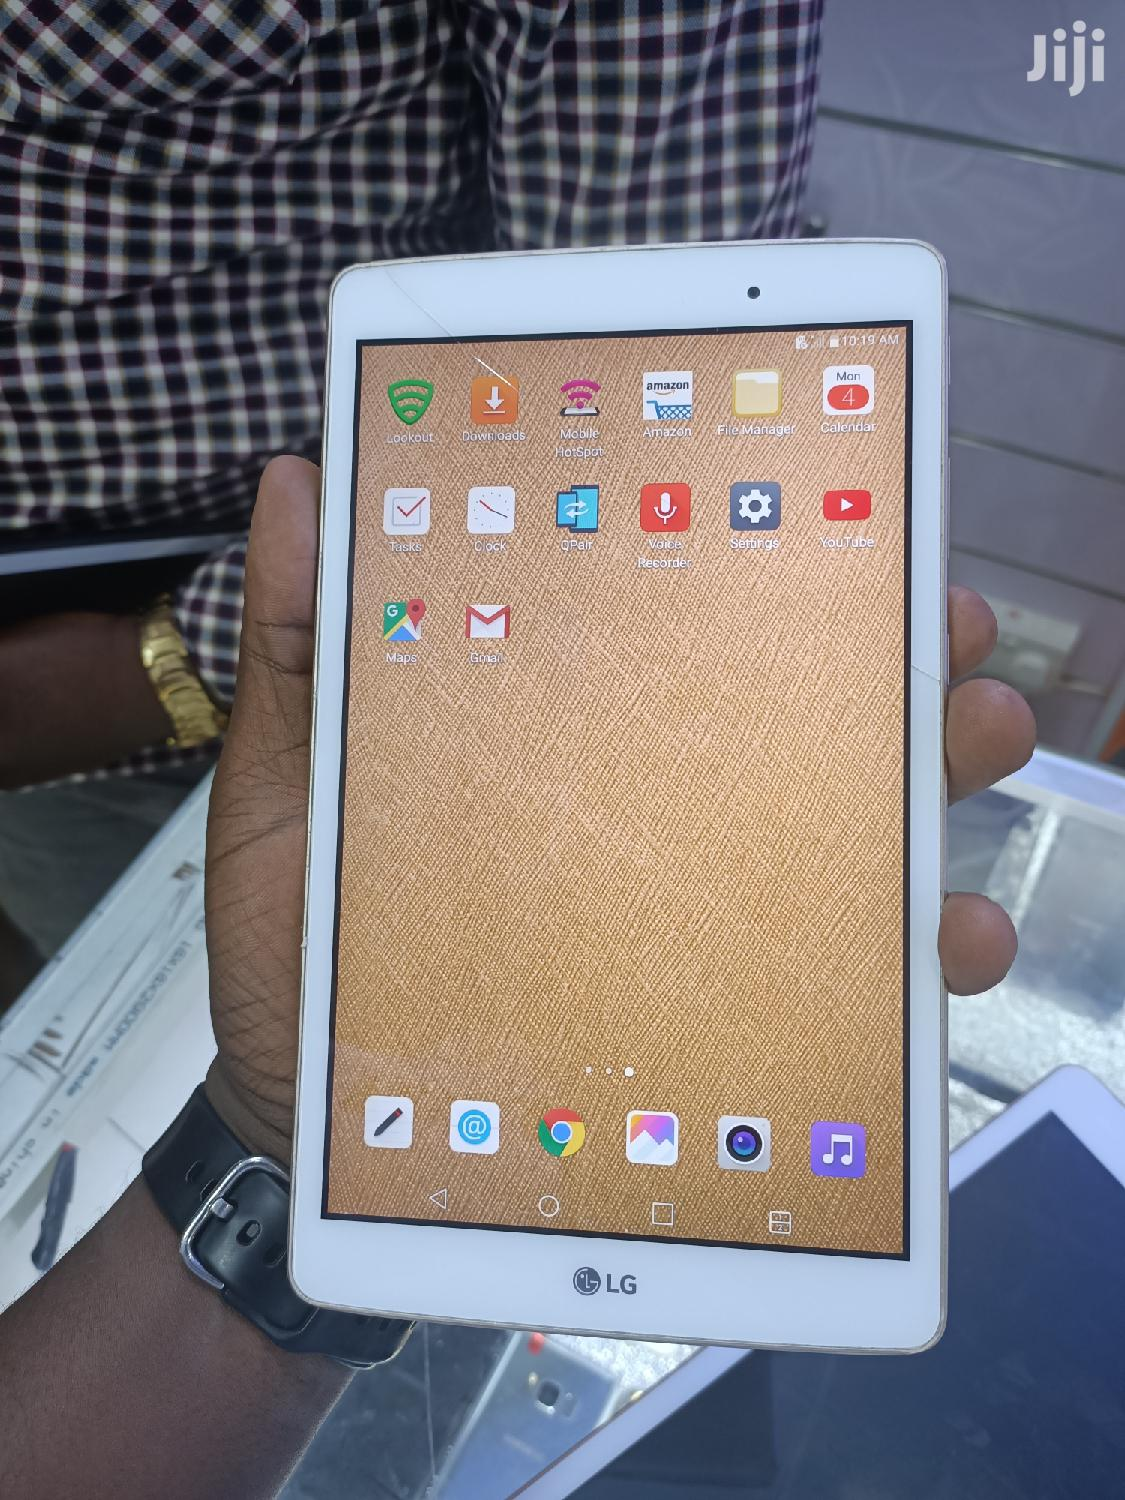 LG G Pad X 8.0 16 GB | Tablets for sale in Kampala, Central Region, Uganda